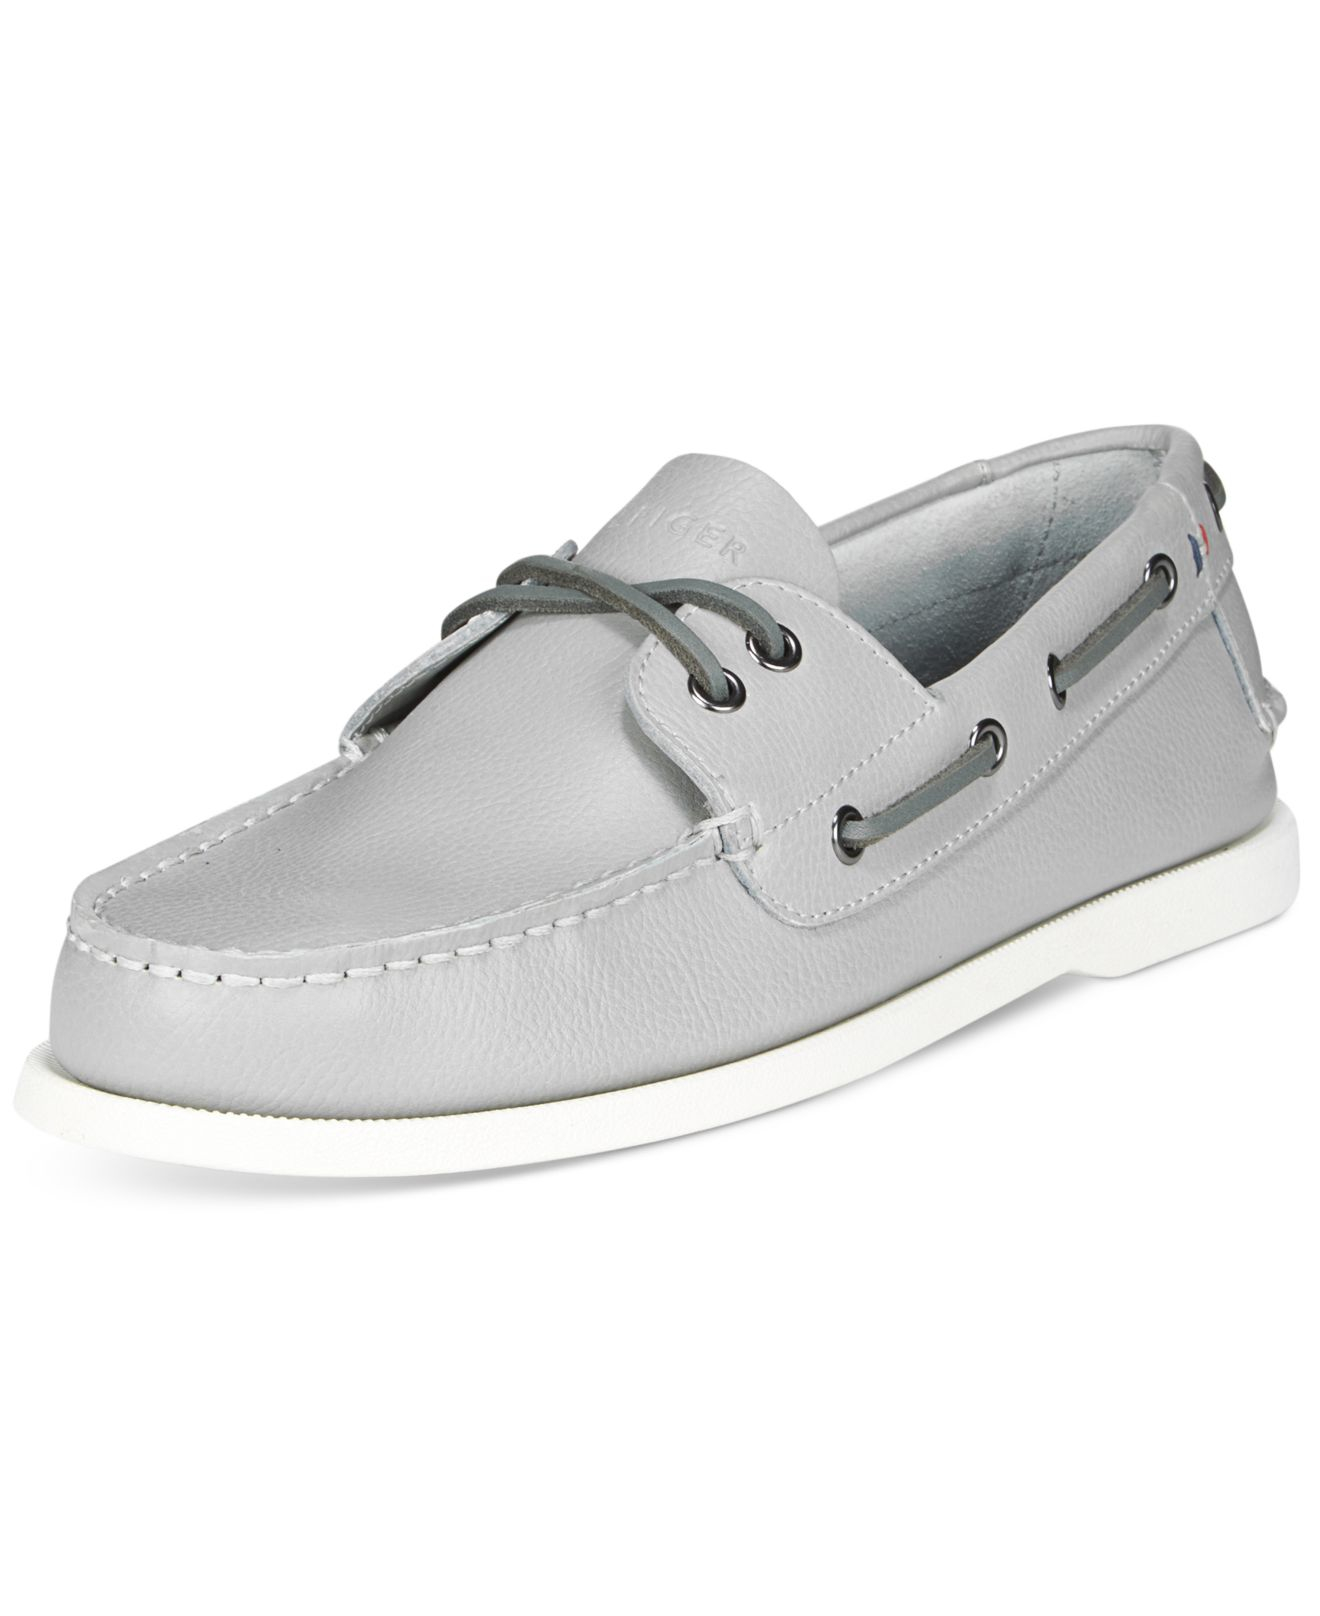 2e4e316f1 Lyst - Tommy Hilfiger Men s Bowman Boat Shoes in Gray for Men